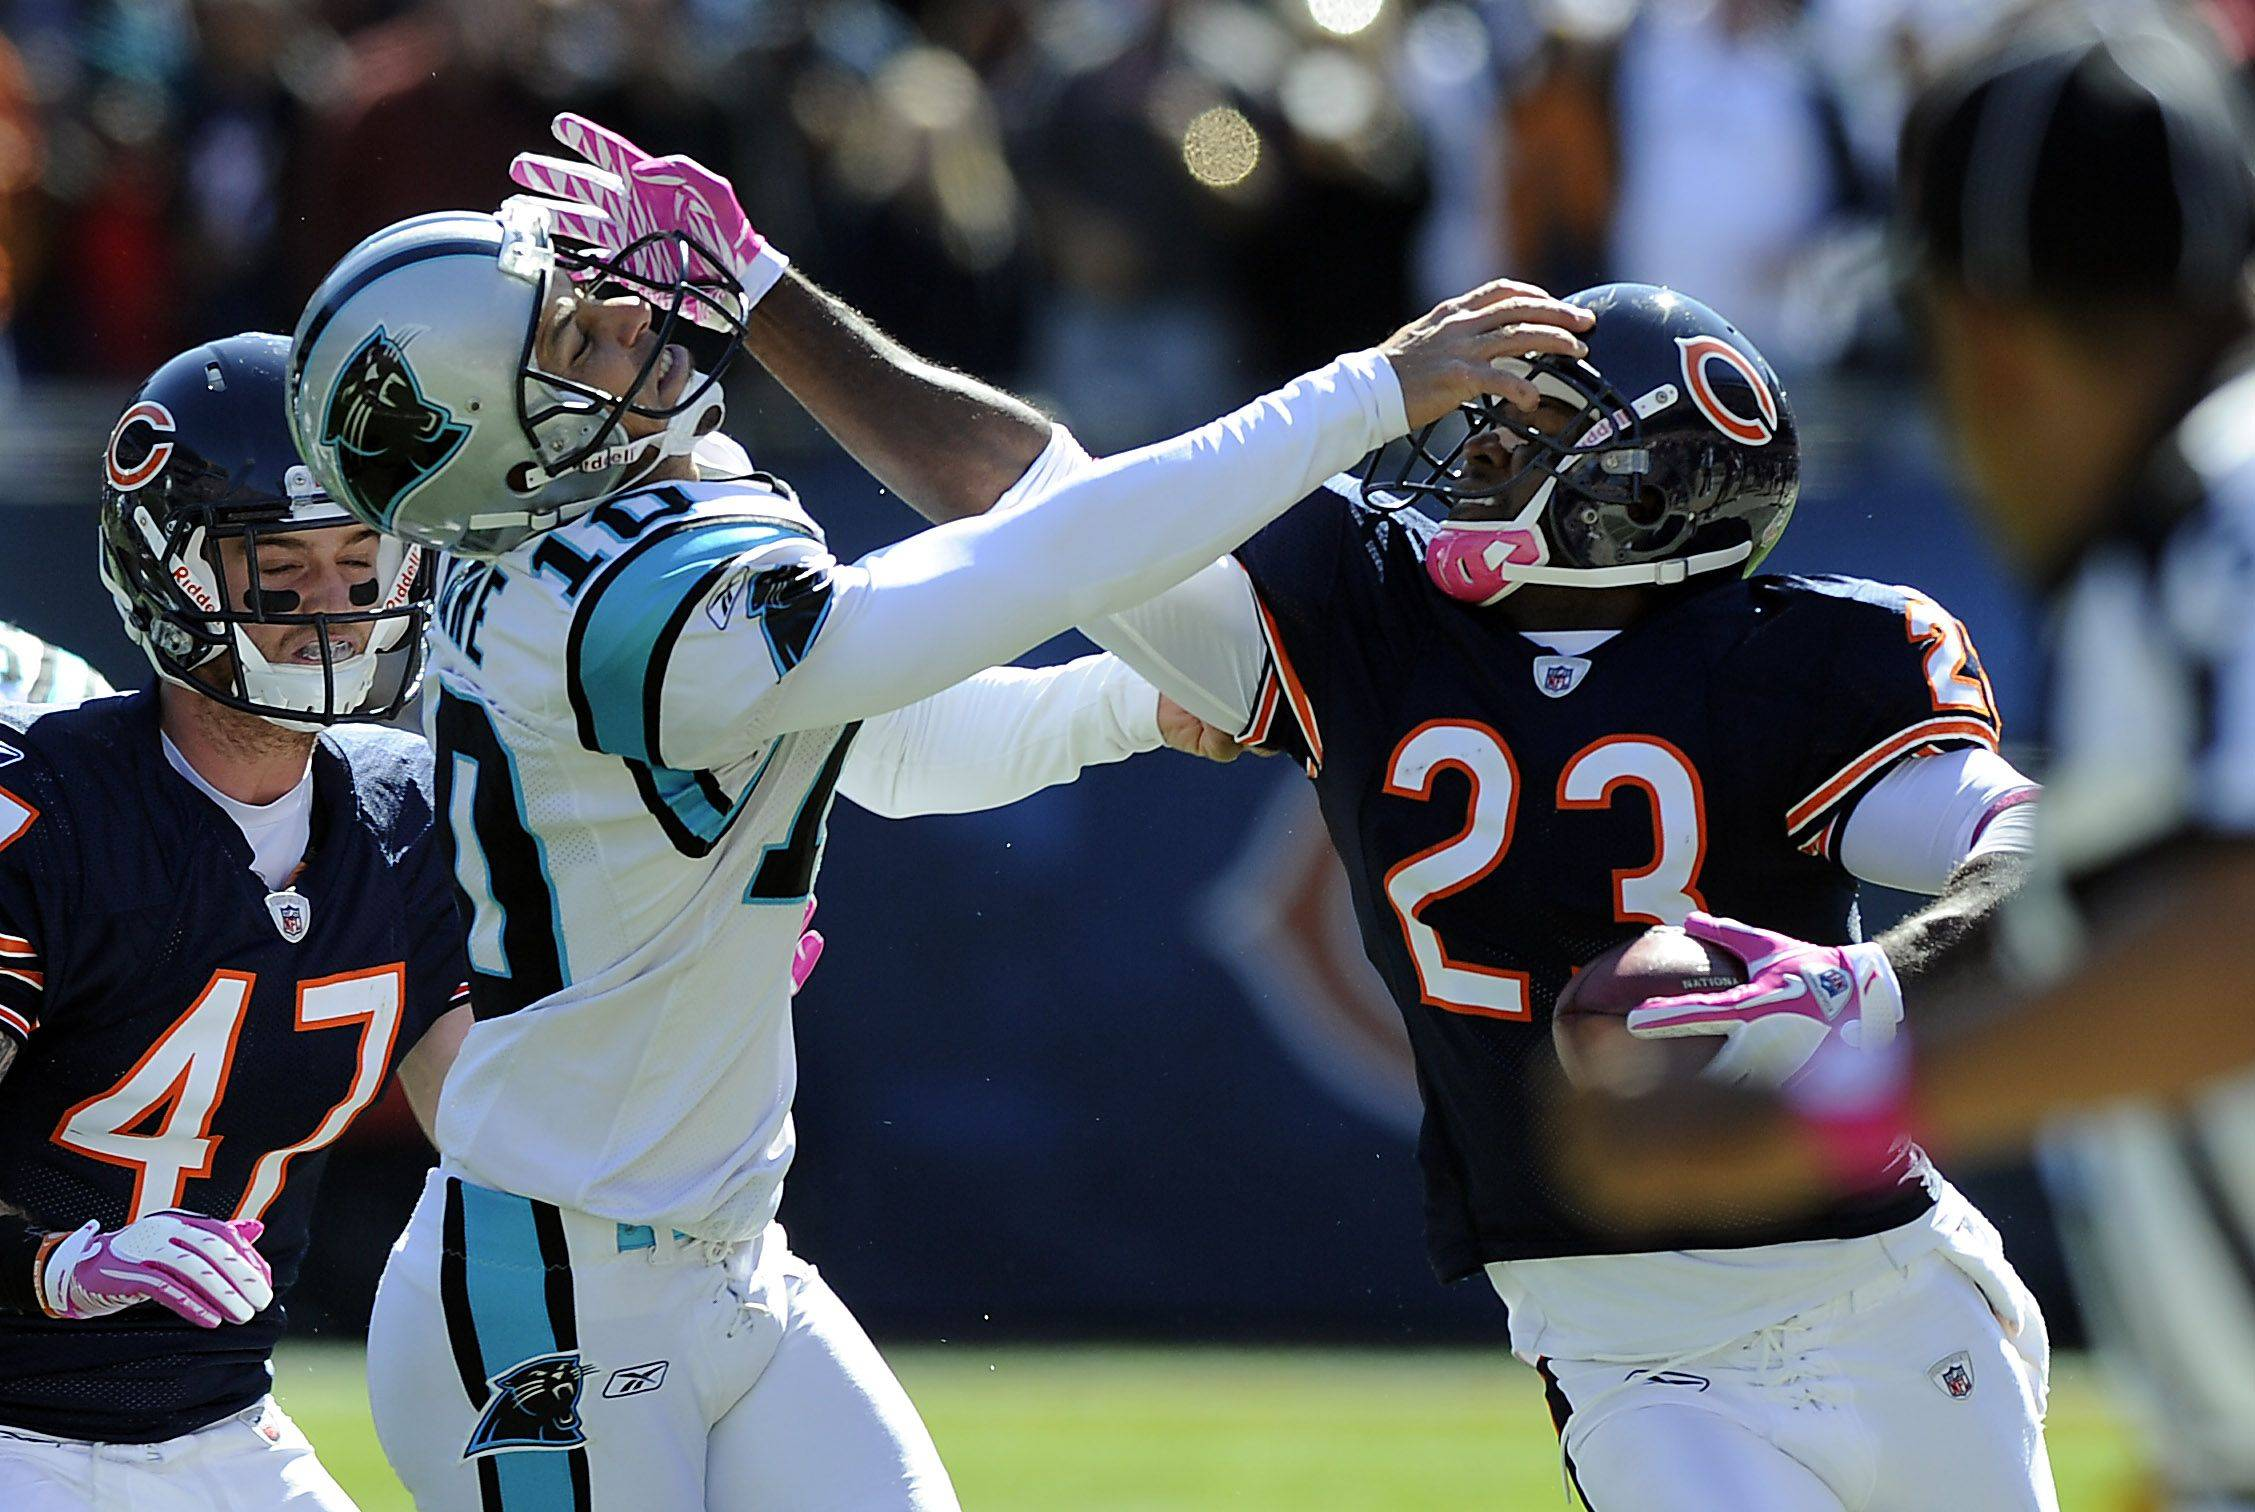 Bears Devin Hester runs back a second quarter punt return for major yardage as he battles Panthers Olindo Mare setting up a touchdown for Matt Forte at Soldier Field on Sunday.